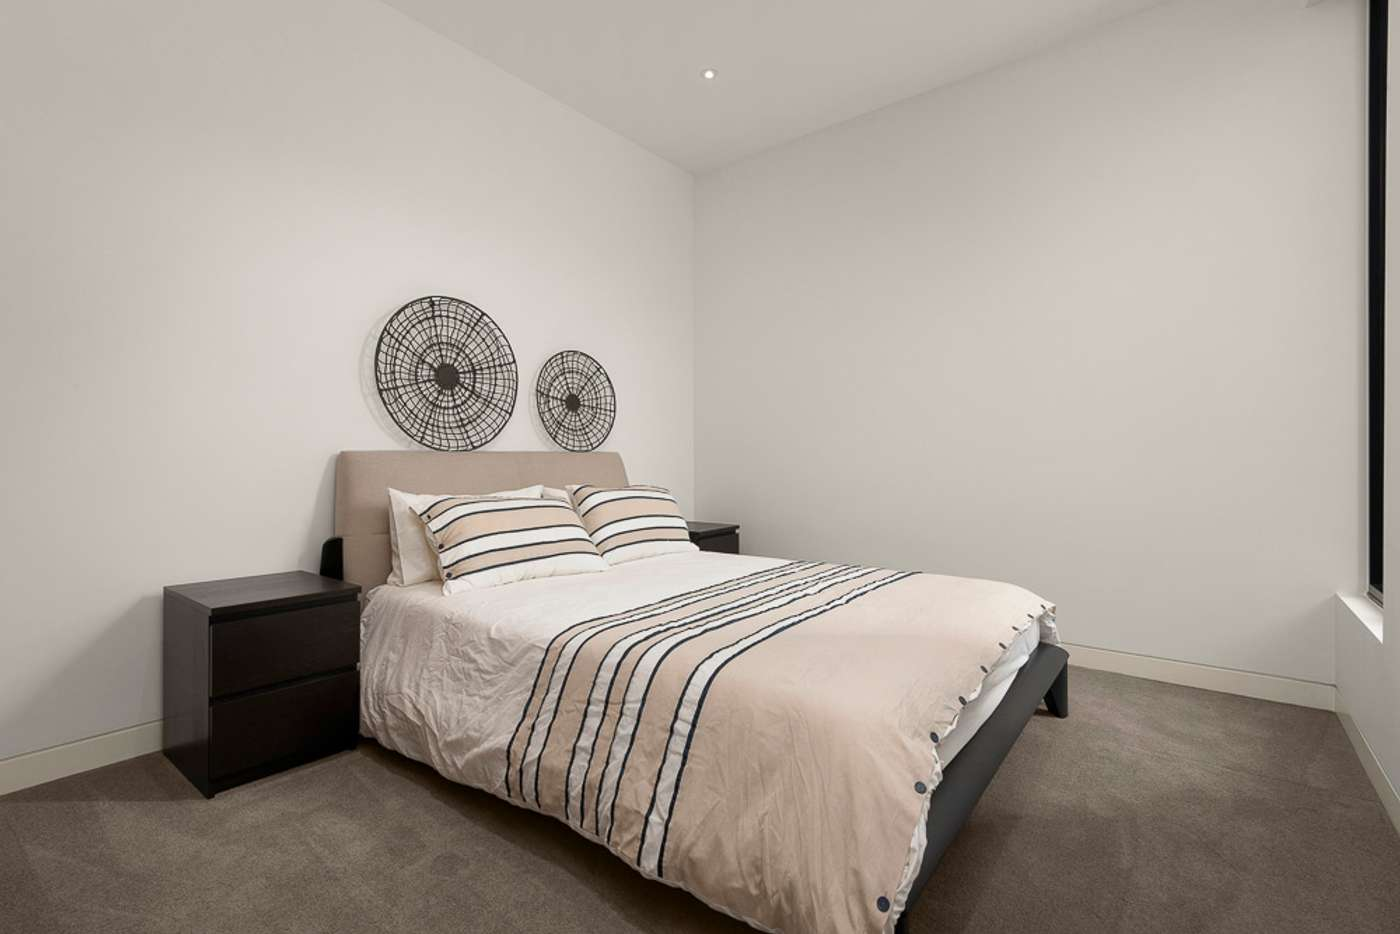 Sixth view of Homely apartment listing, 1/83 Surrey Rd North, South Yarra VIC 3141